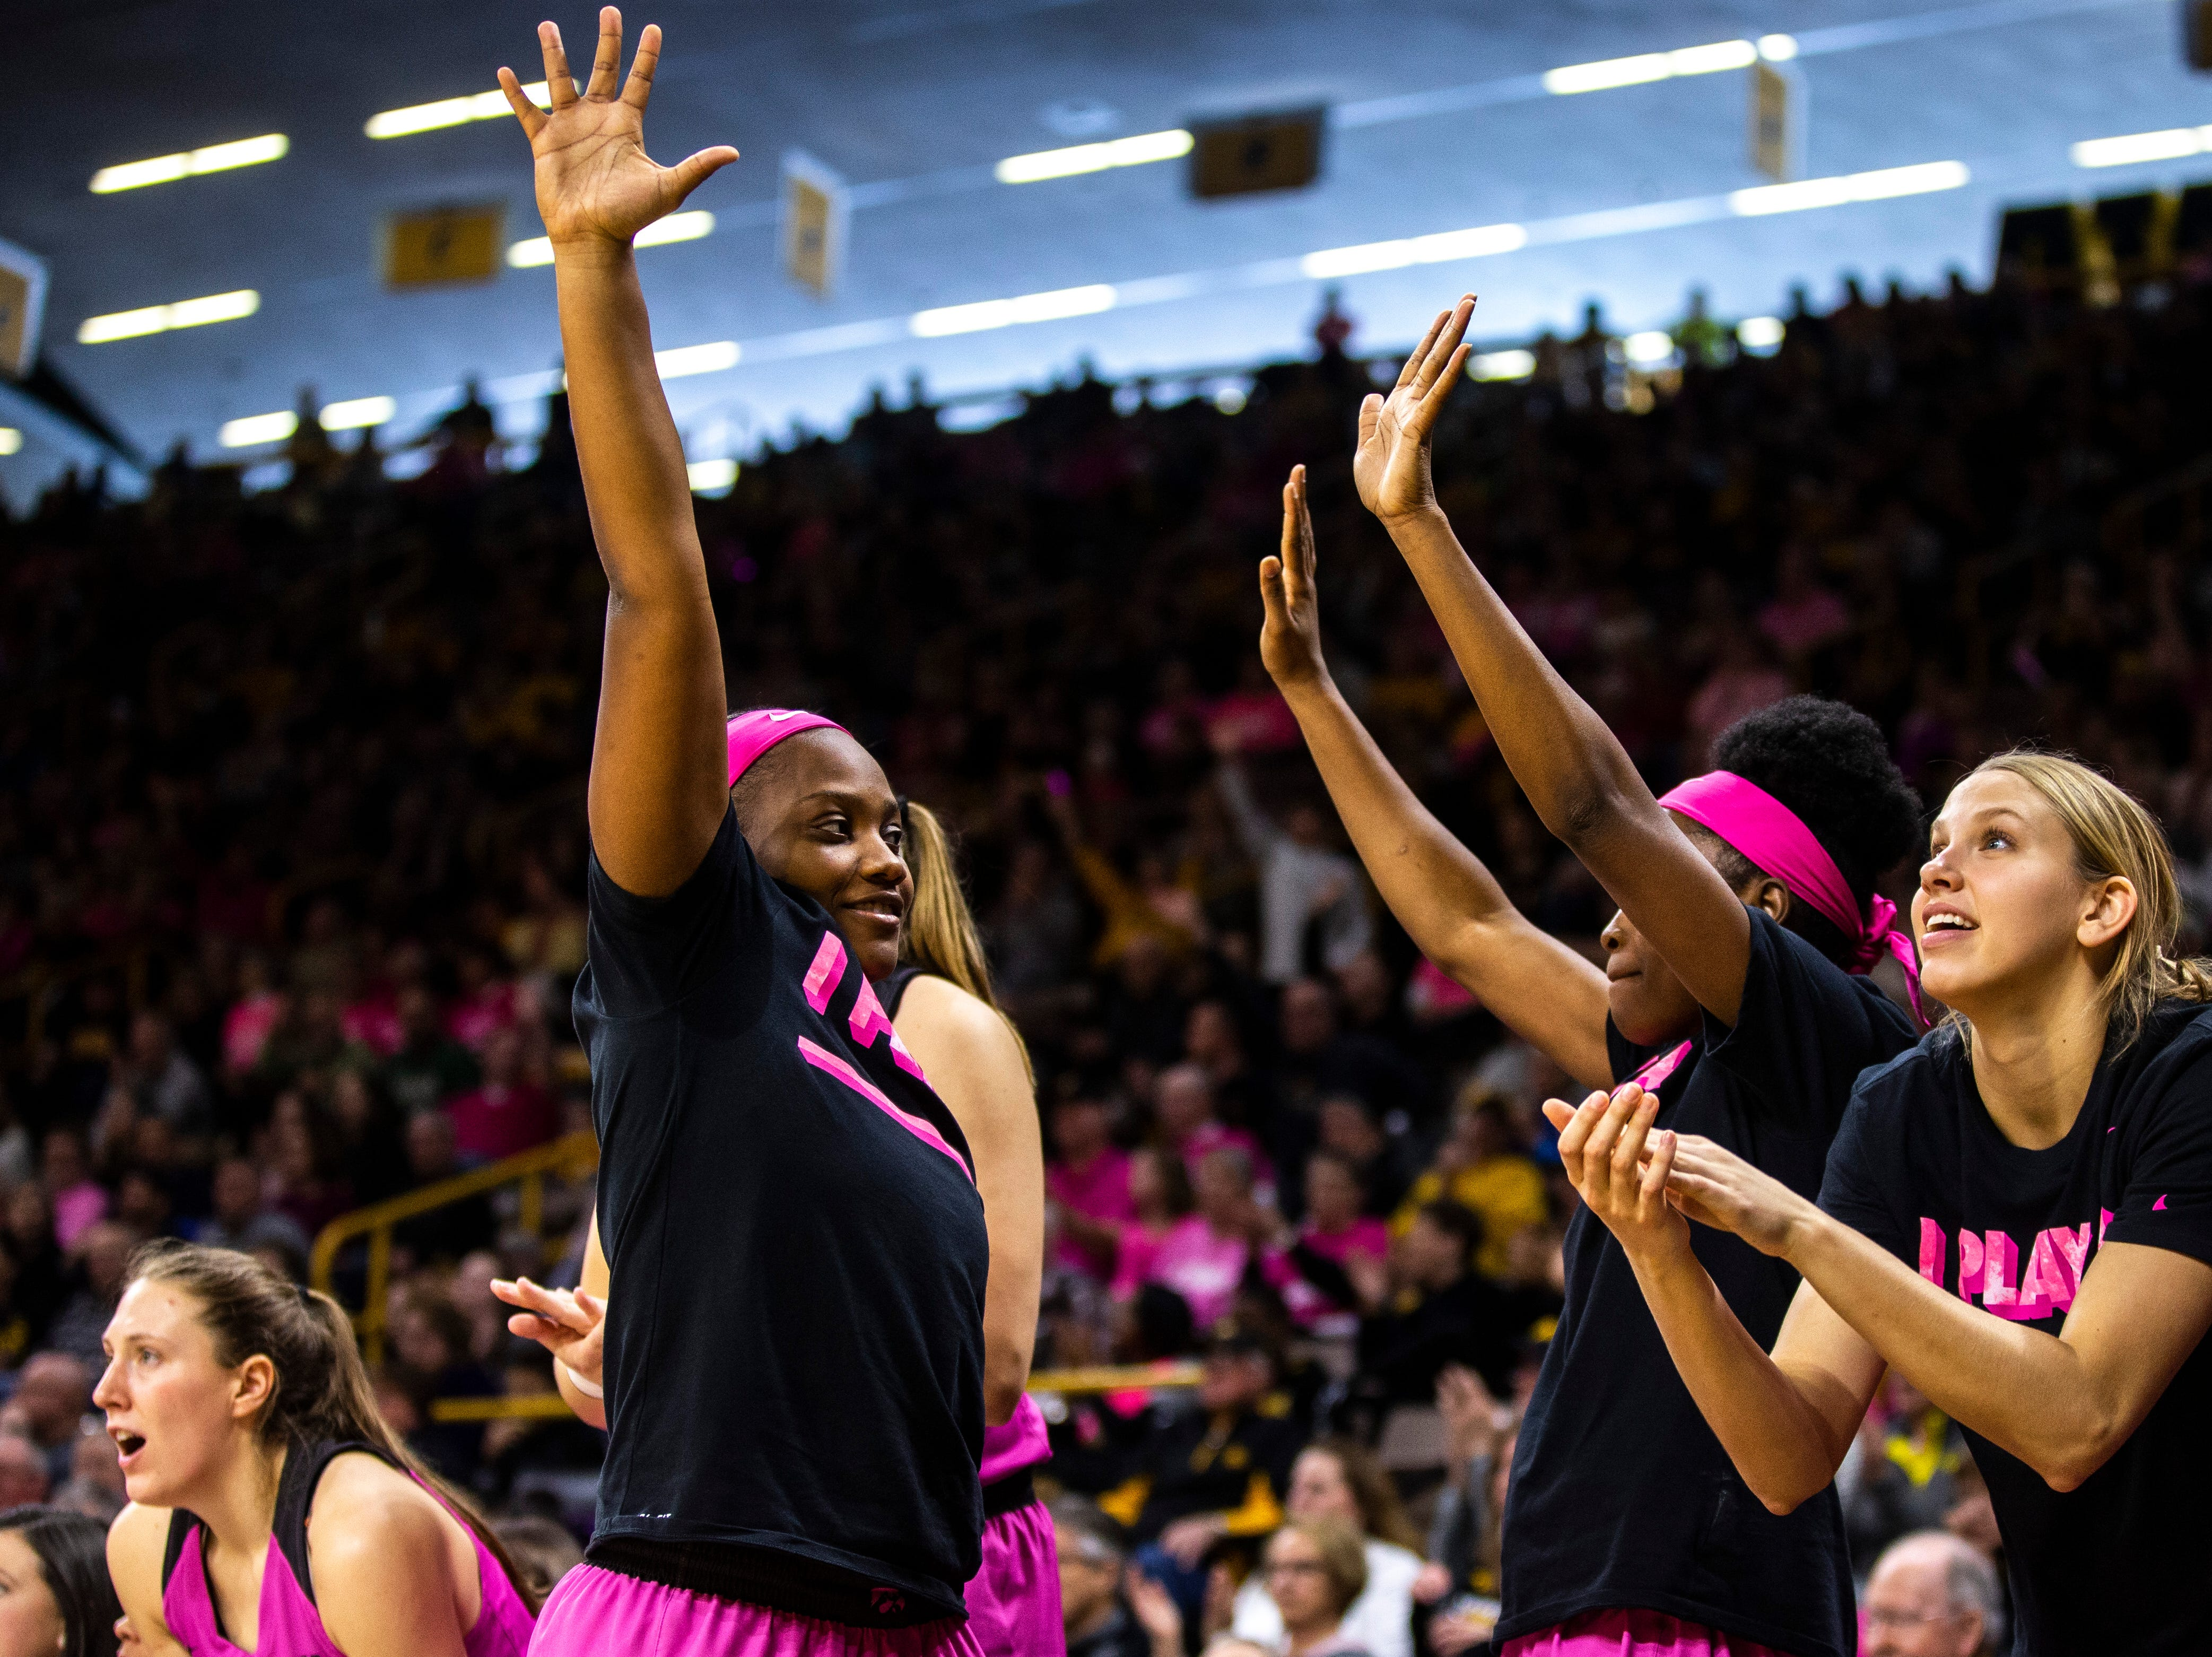 Iowa guard Zion Sanders holds up five fingers after a Maryland player fouled out during a NCAA Big Ten Conference women's basketball game on Sunday, Feb. 17, 2019 at Carver-Hawkeye Arena in Iowa City, Iowa.